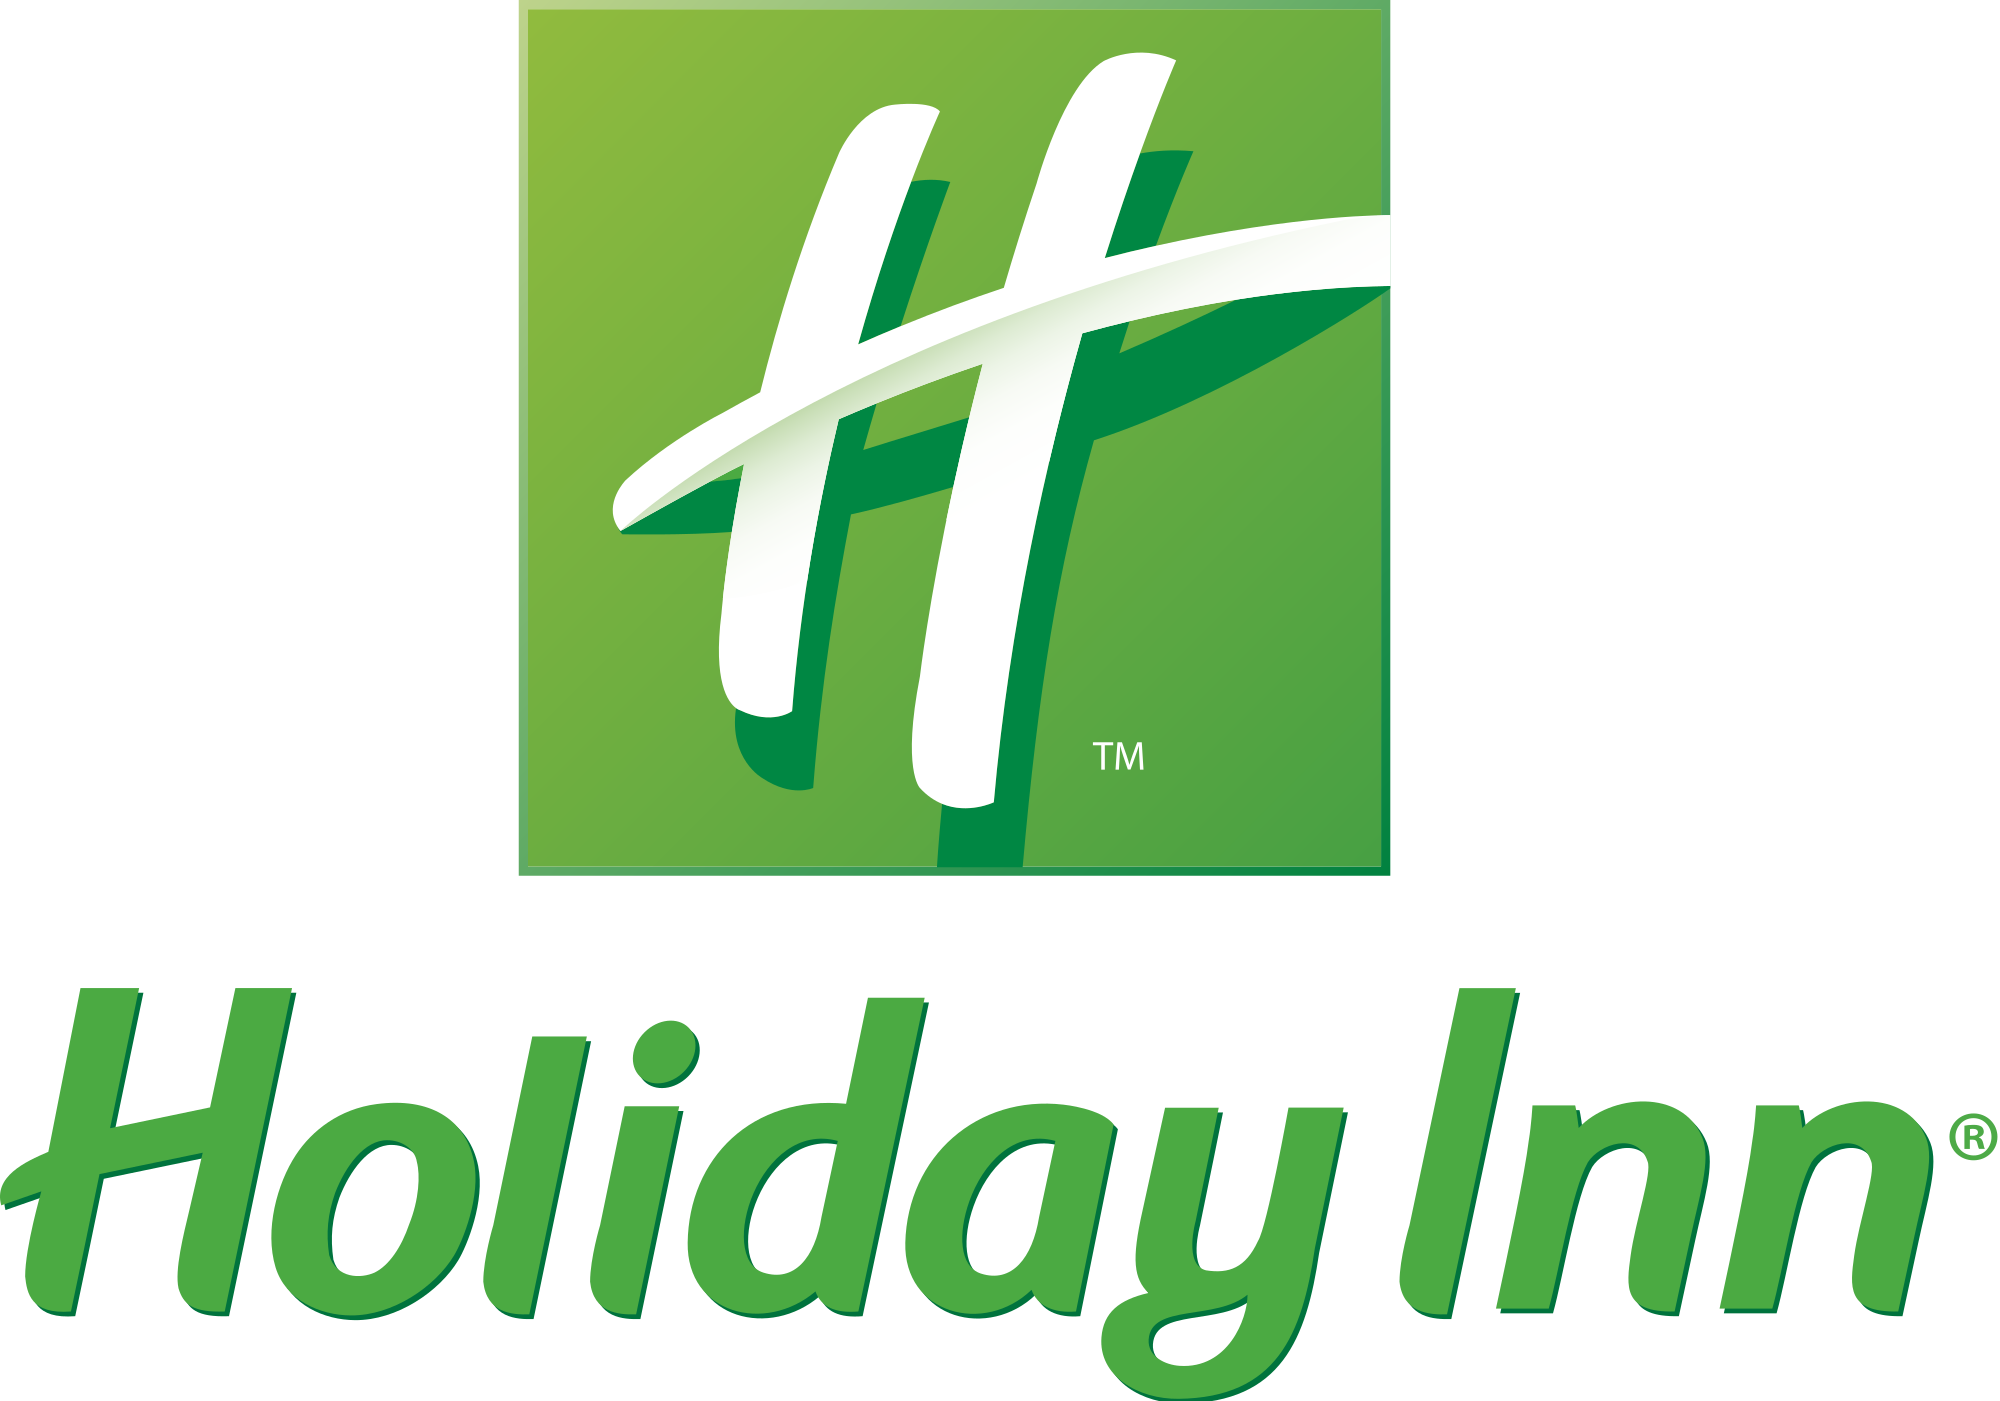 Holiday inn express logo png. File svg wikimedia commons